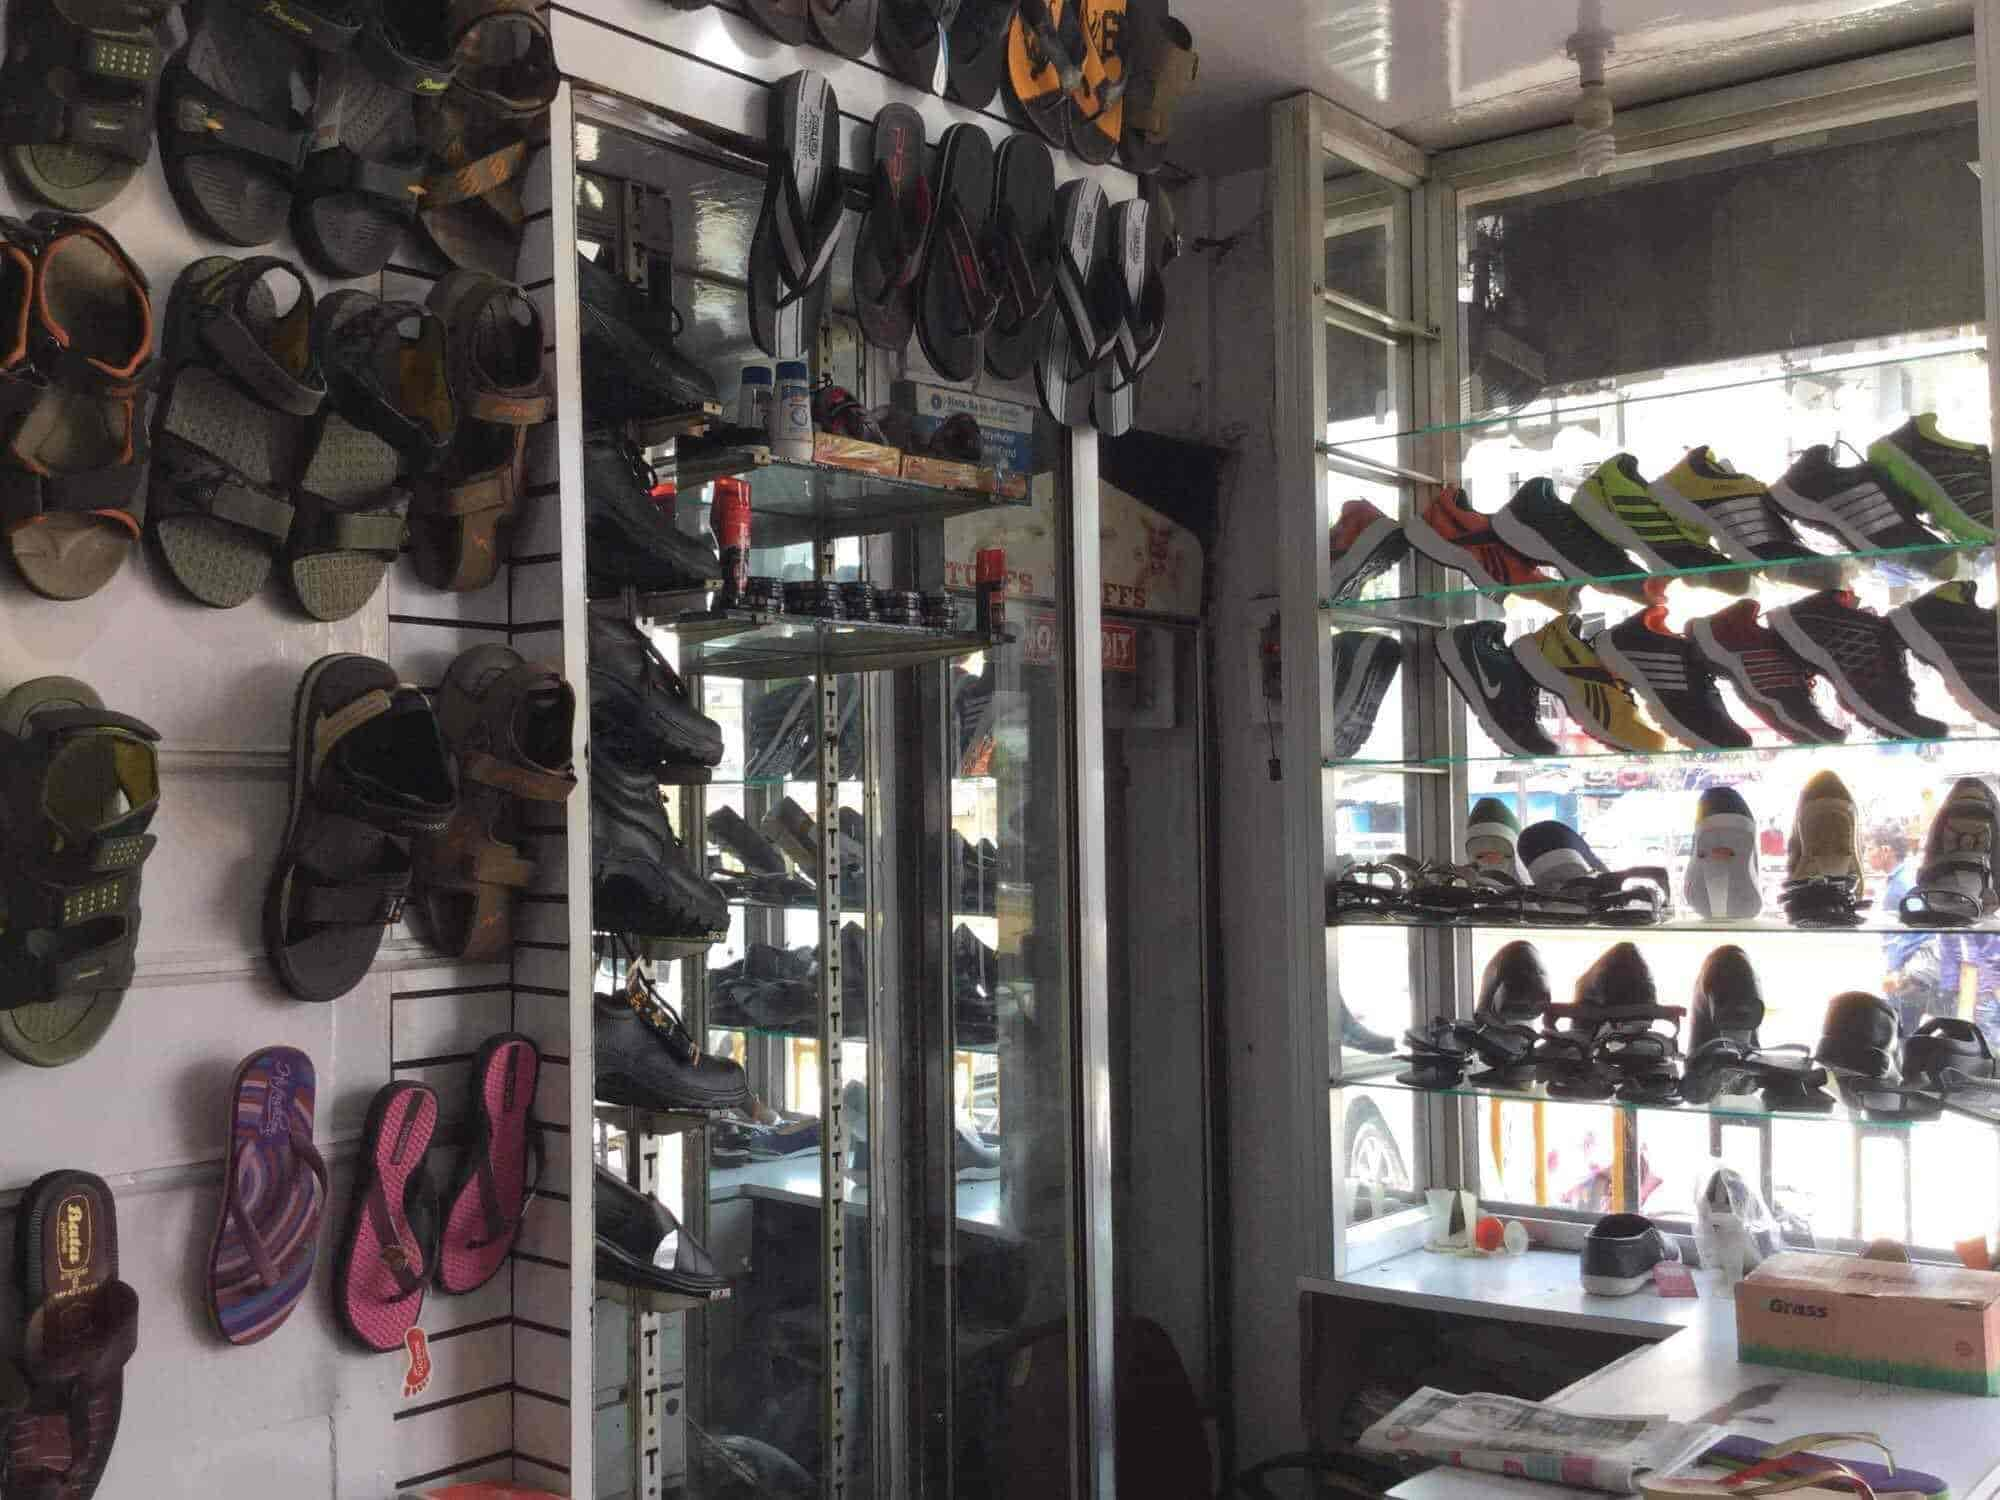 d875c5318879 New Shoes Palace - Shoe Dealers in Rourkela - Justdial